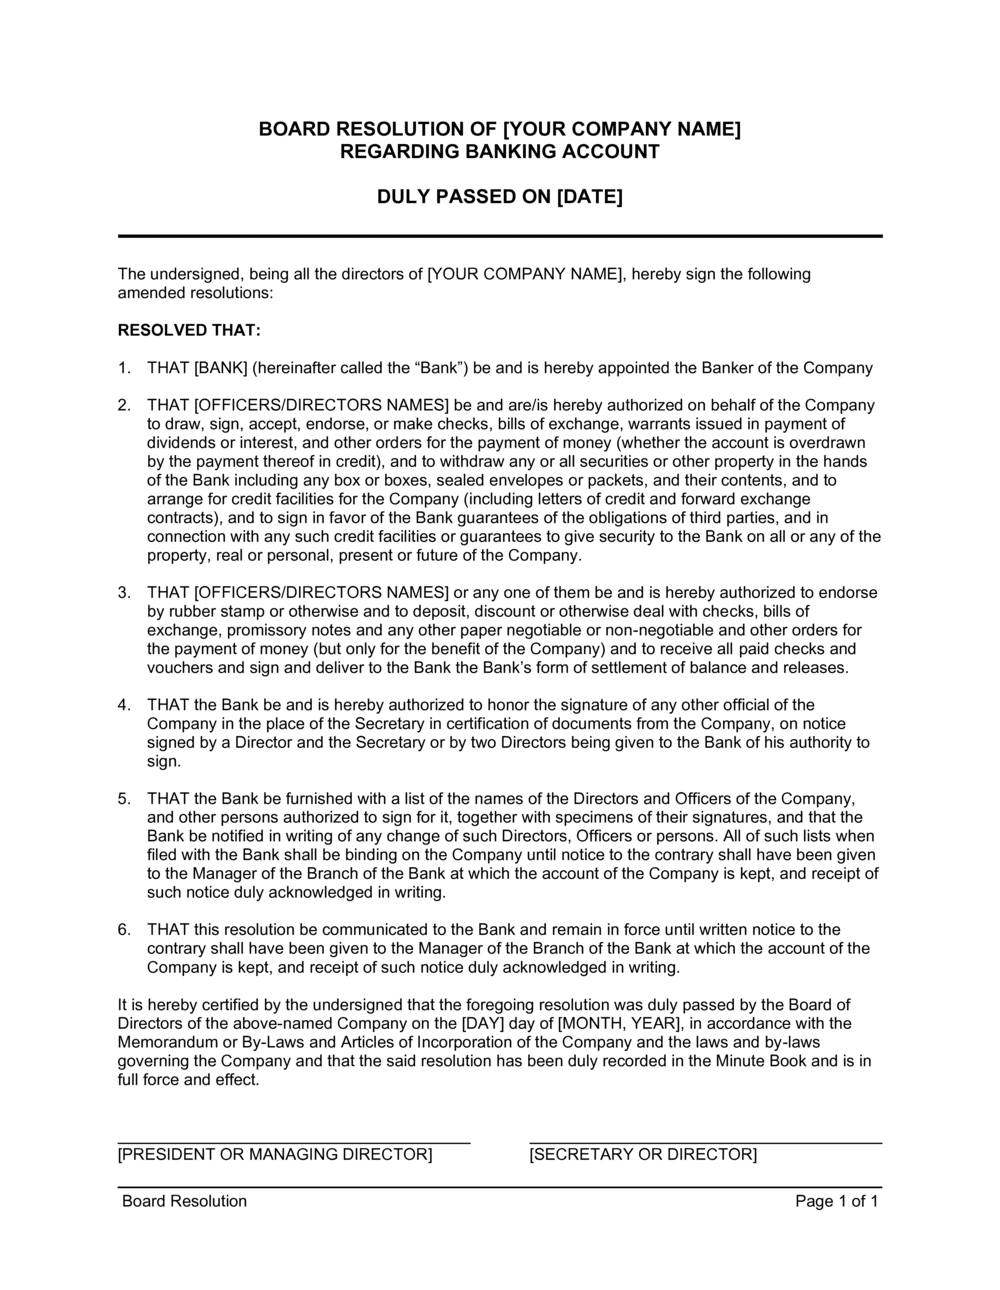 Business-in-a-Box's Board Resolution Regarding Banking Account Template